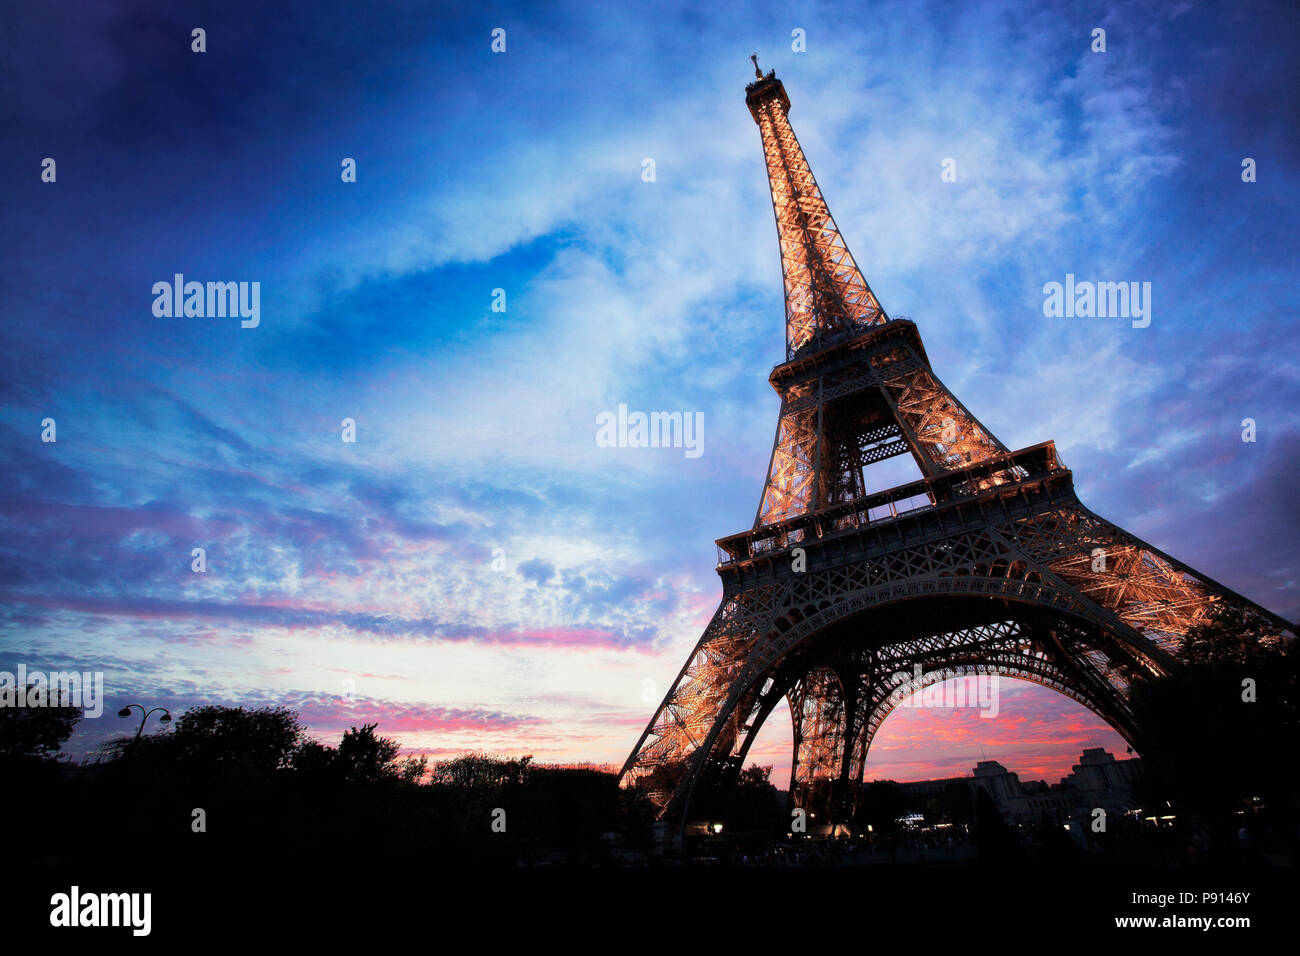 The Eiffel Tower lights up at dusk.  Paris, France. - Stock Image